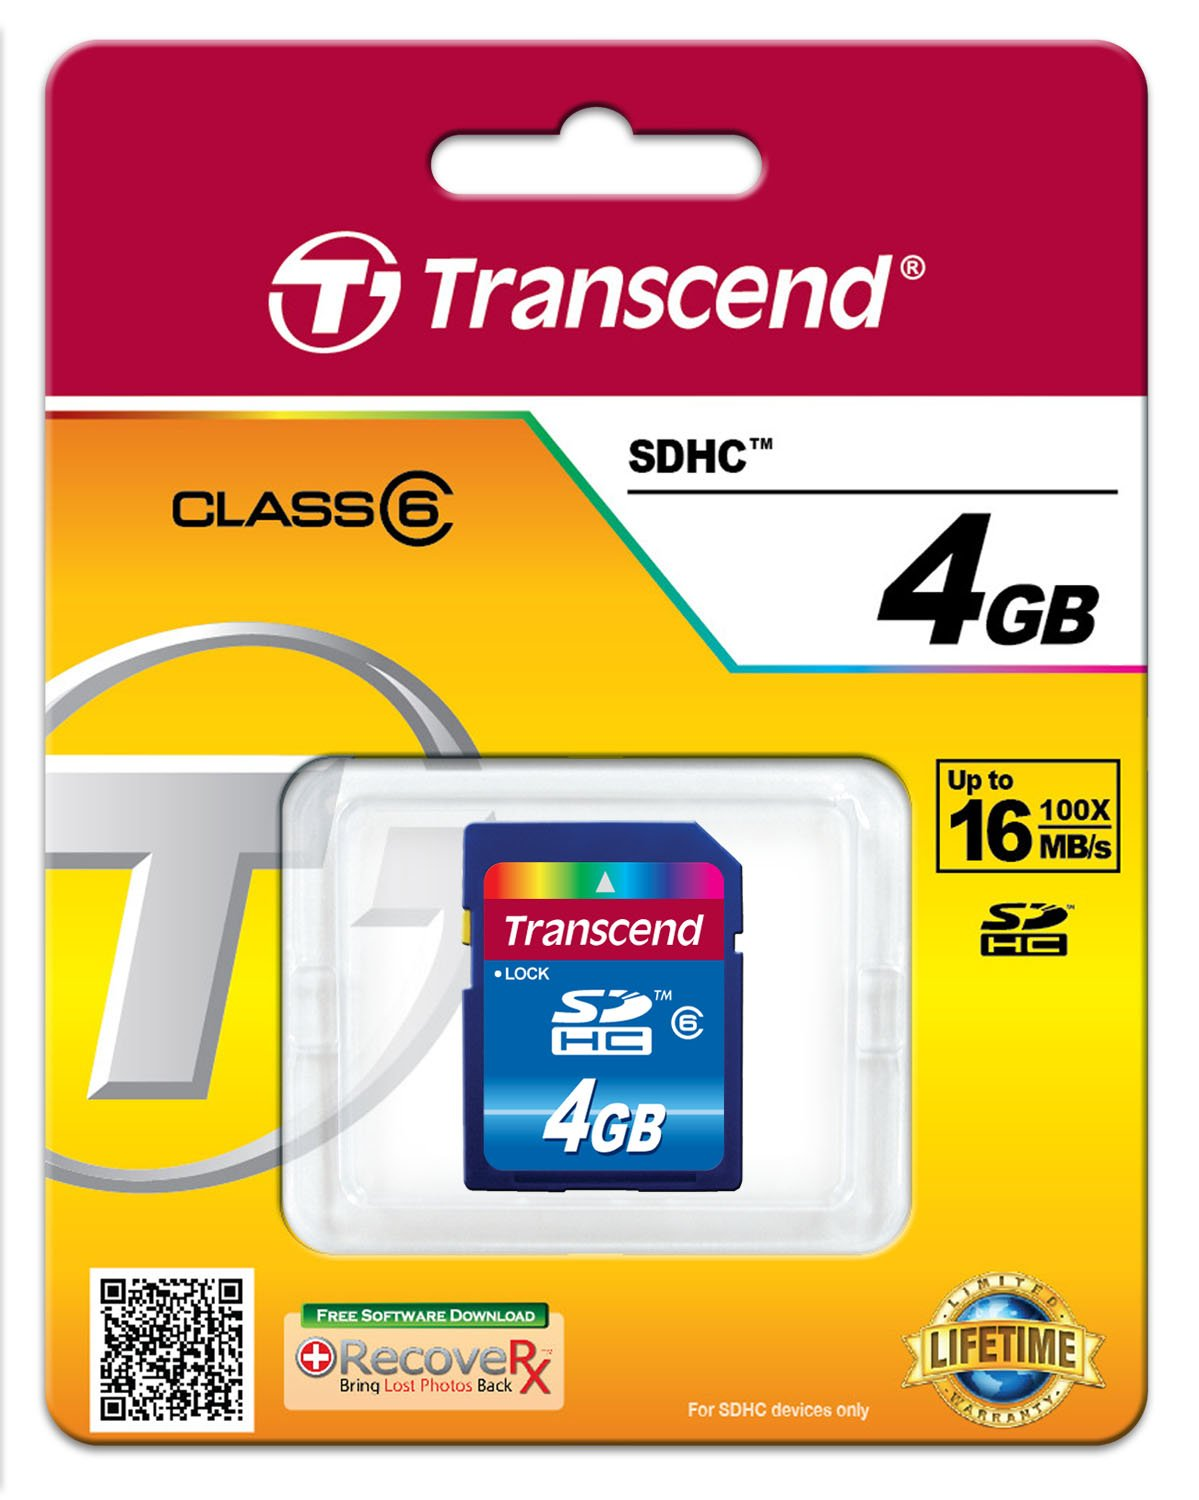 Transcend 4 GB Class 6 SDHC Flash Memory Card TS4GSDHC6 by Transcend